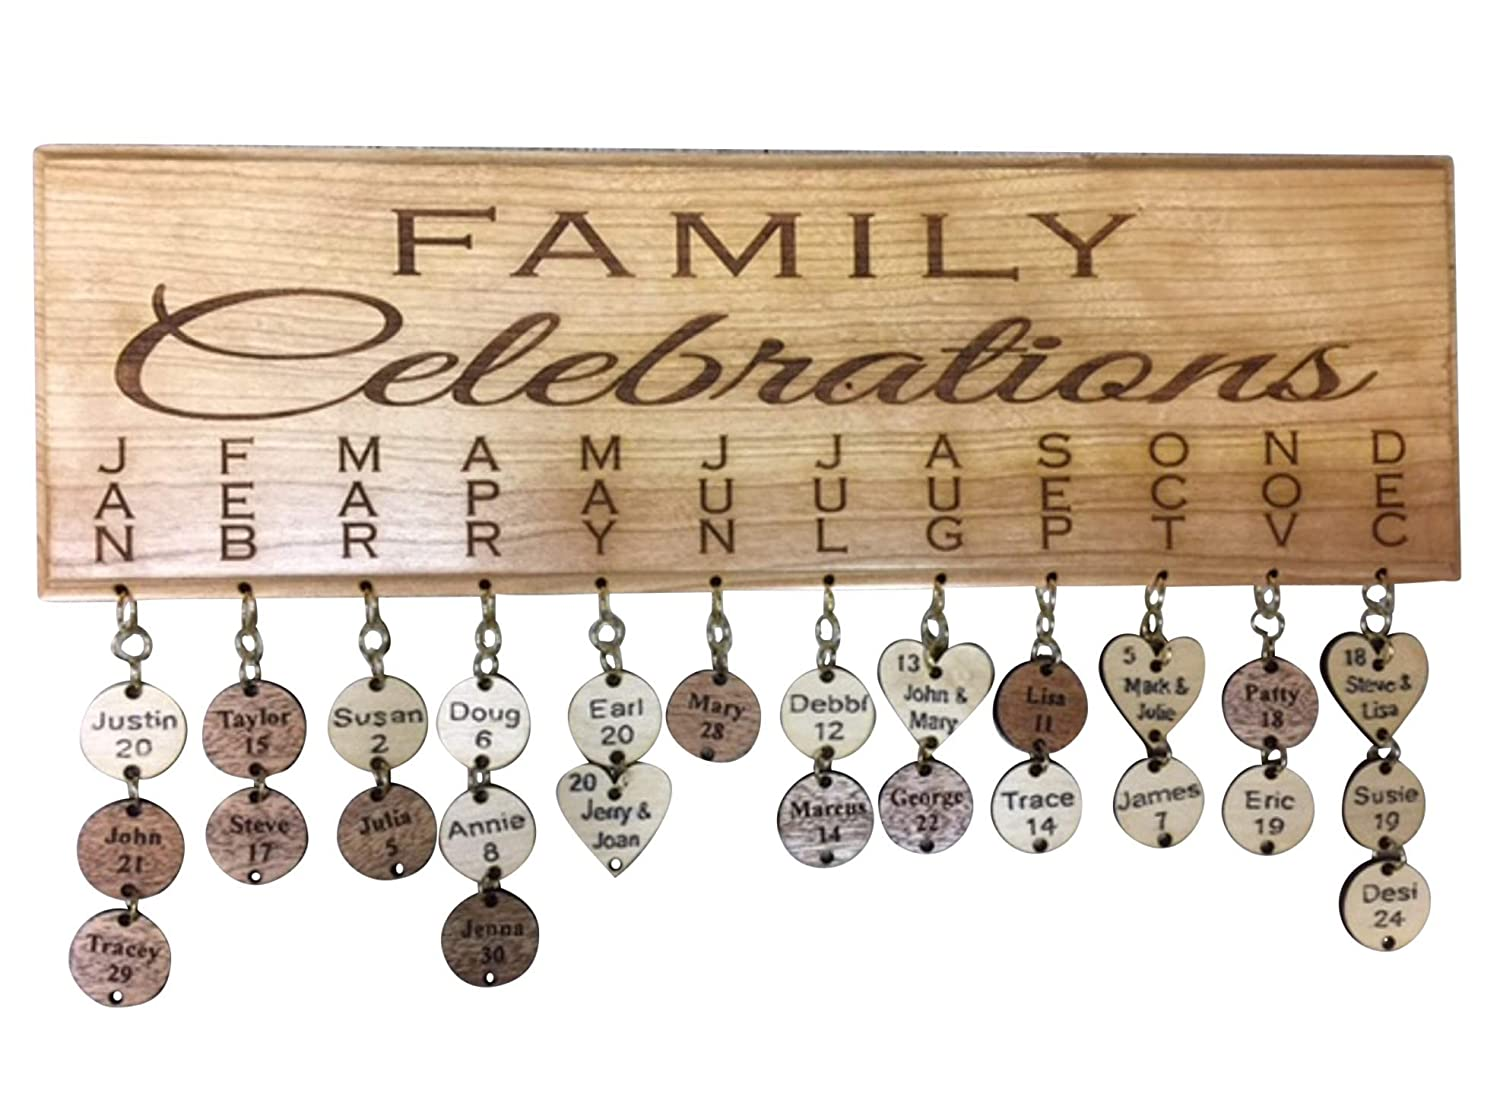 6x4ft,sxy1335 Levoo Memorial Day Ceremony Background Banner Photography Studio Birthday Family Party Holiday Celebration Romantic Wedding Photography Backdrop Home Decoration Customizable Words